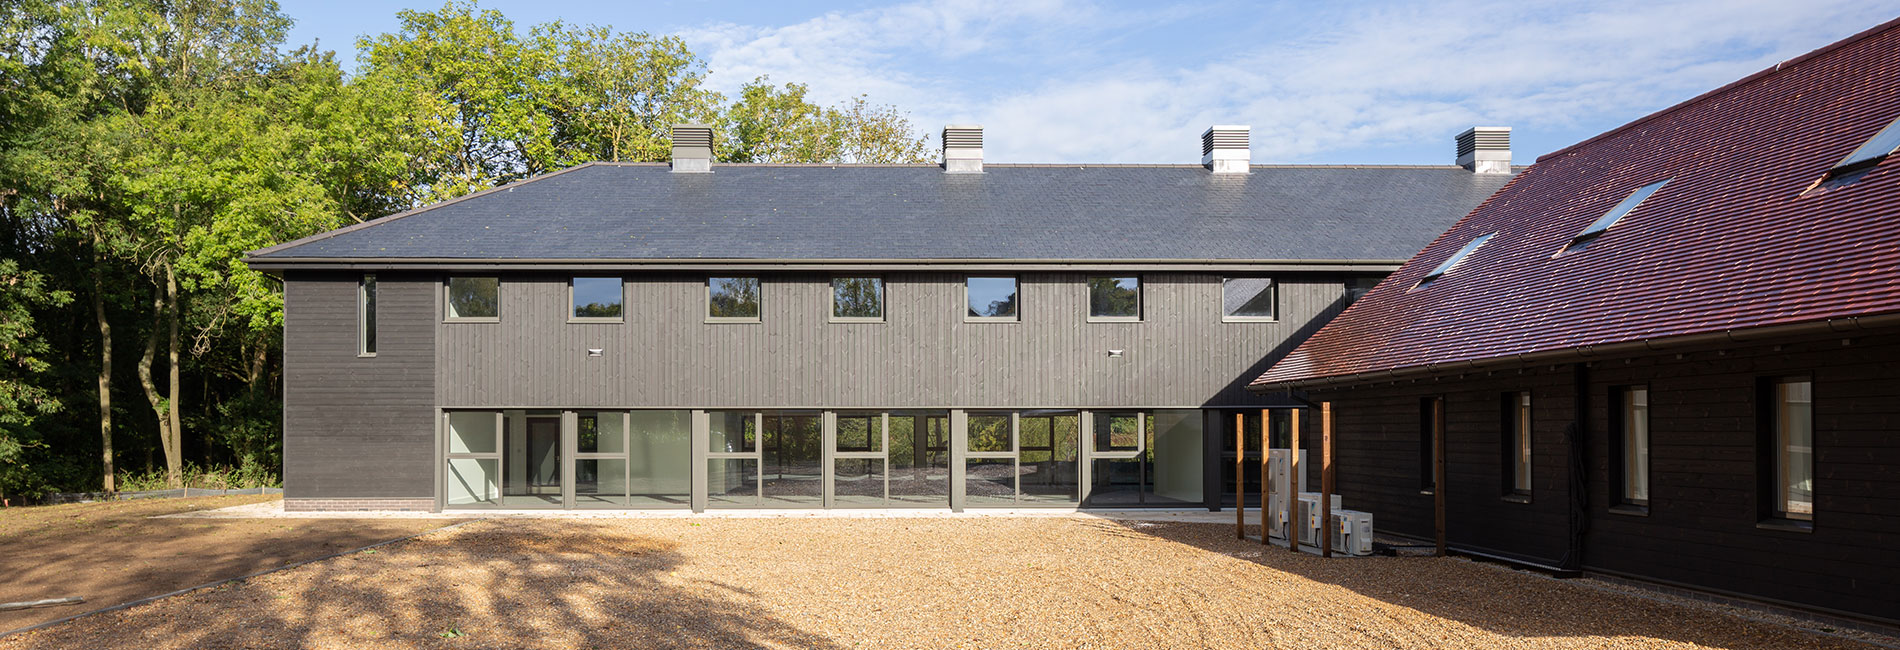 ThermoWood Specified For Development Project in Thremhall Park